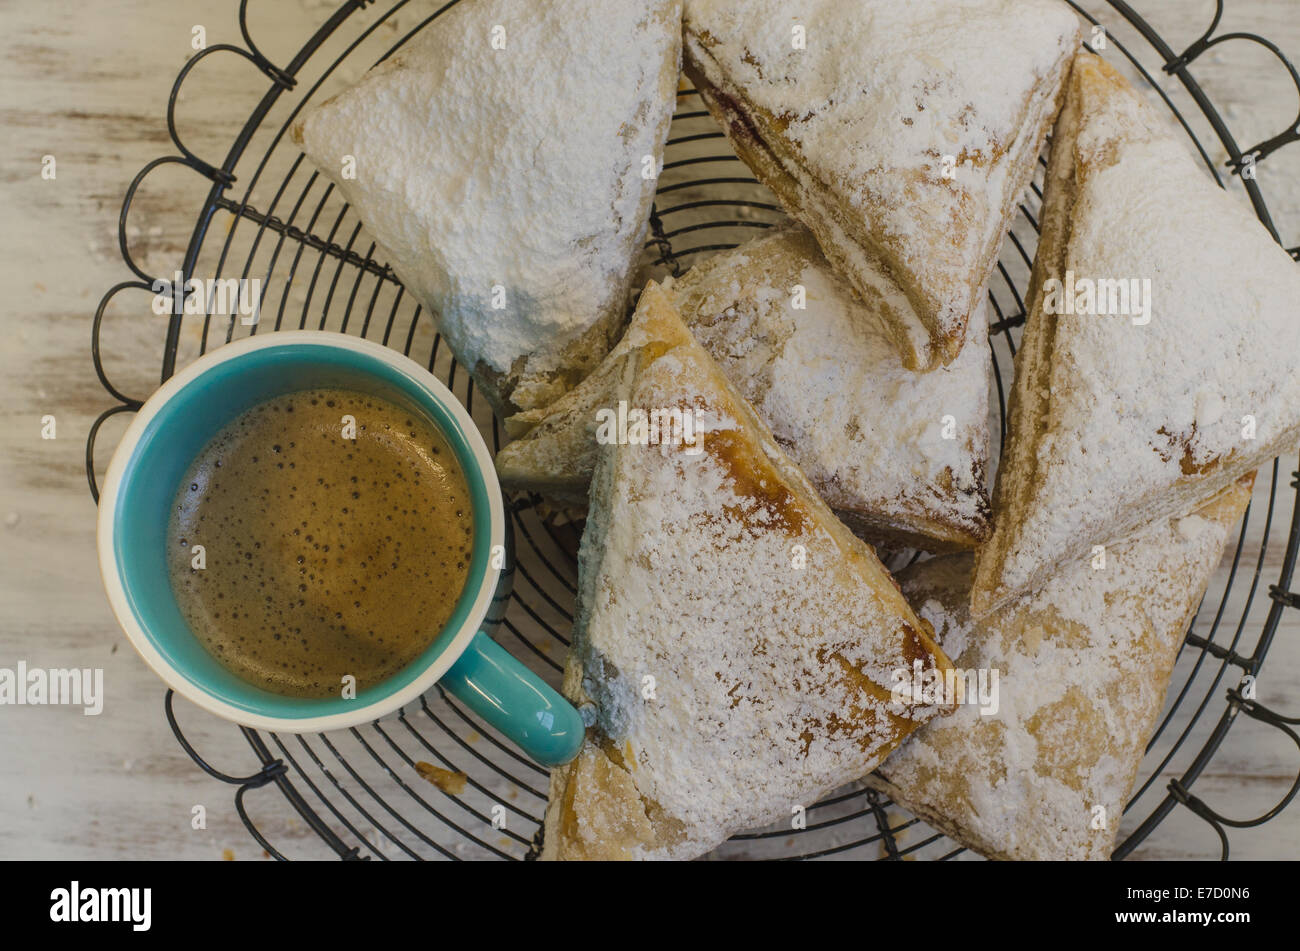 Flaky fruit turnover pastries with coffee on wire rack - Stock Image